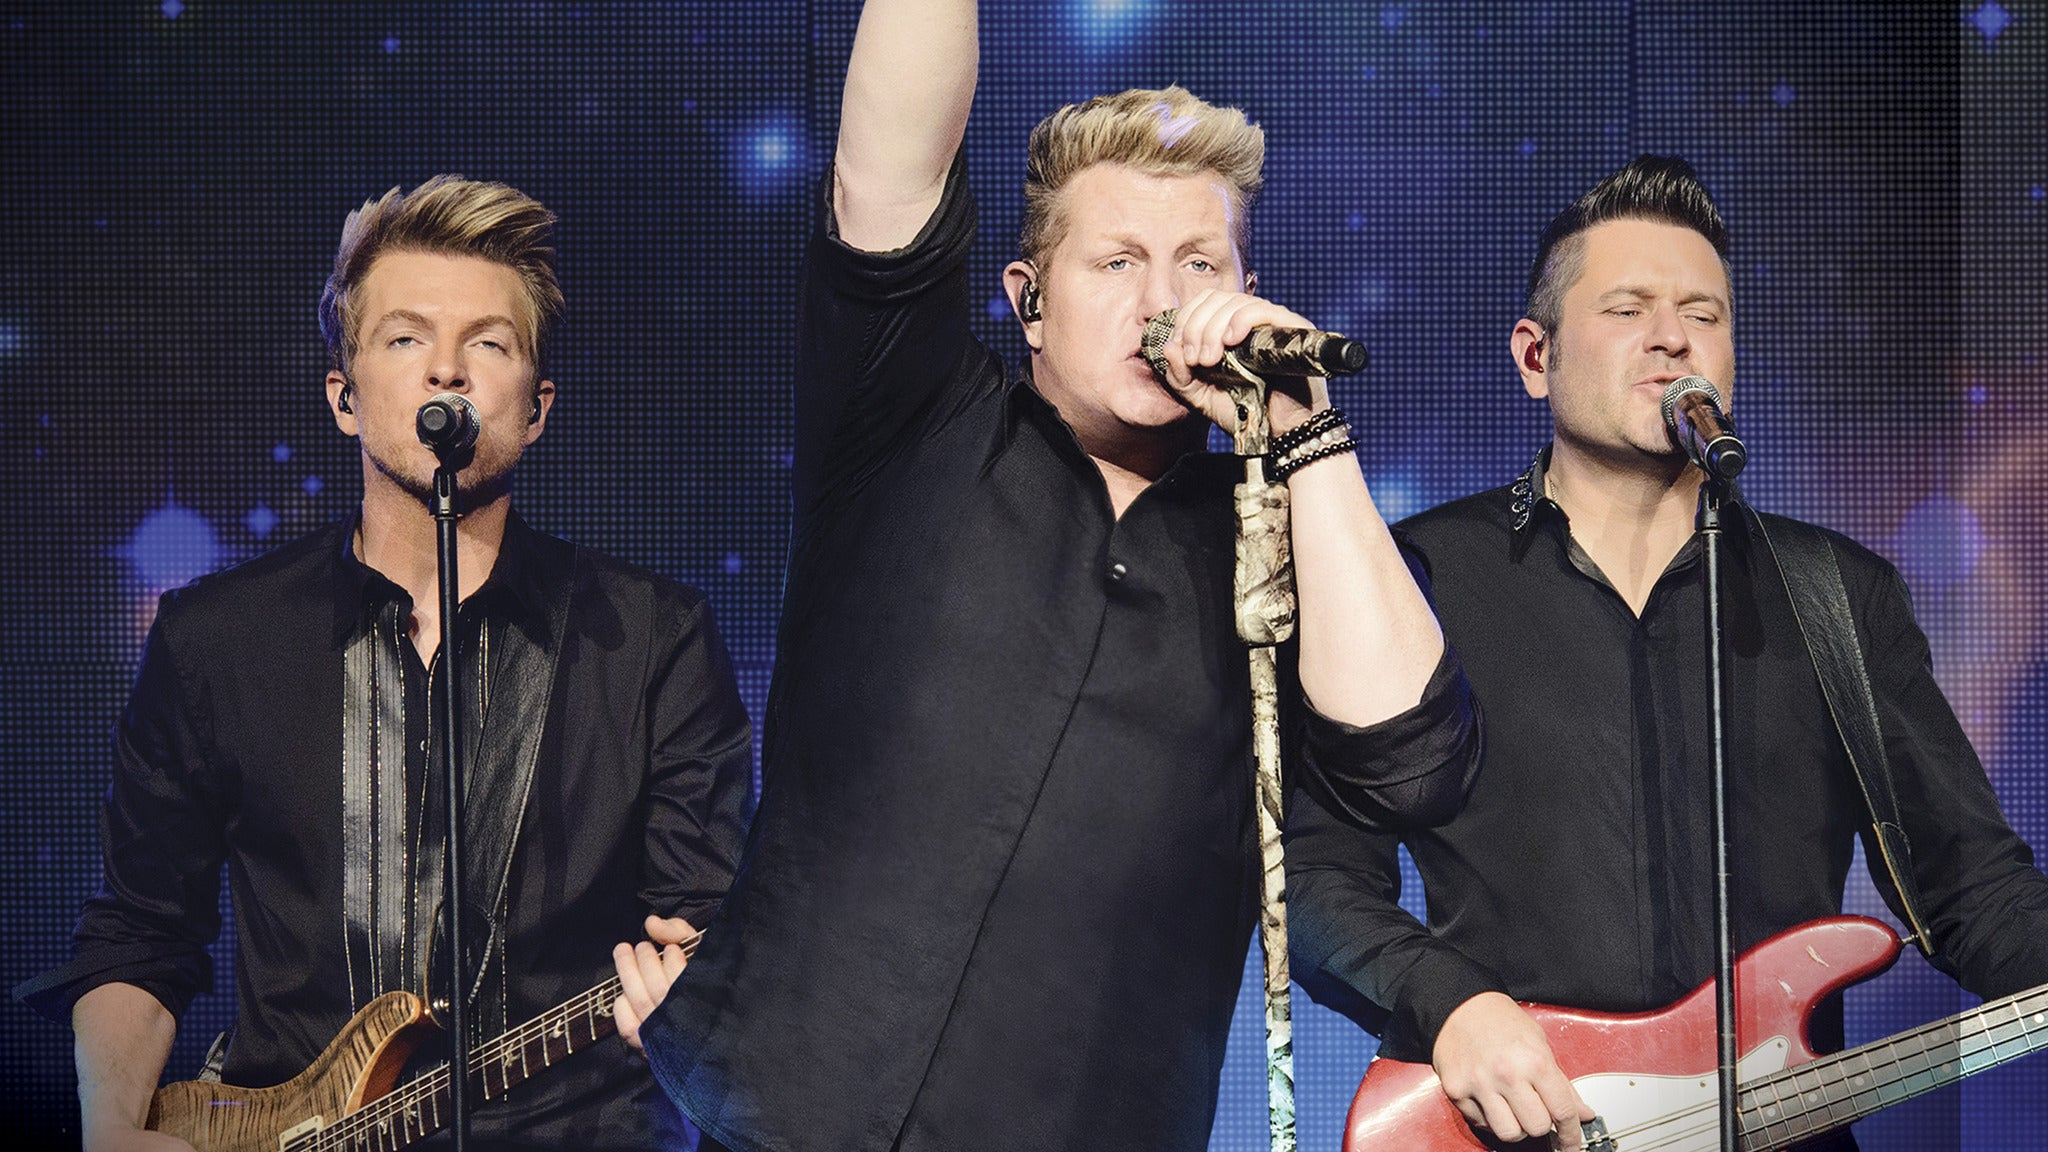 Rascal Flatts UP CLOSE AND ACOUSTIC TOUR 2017